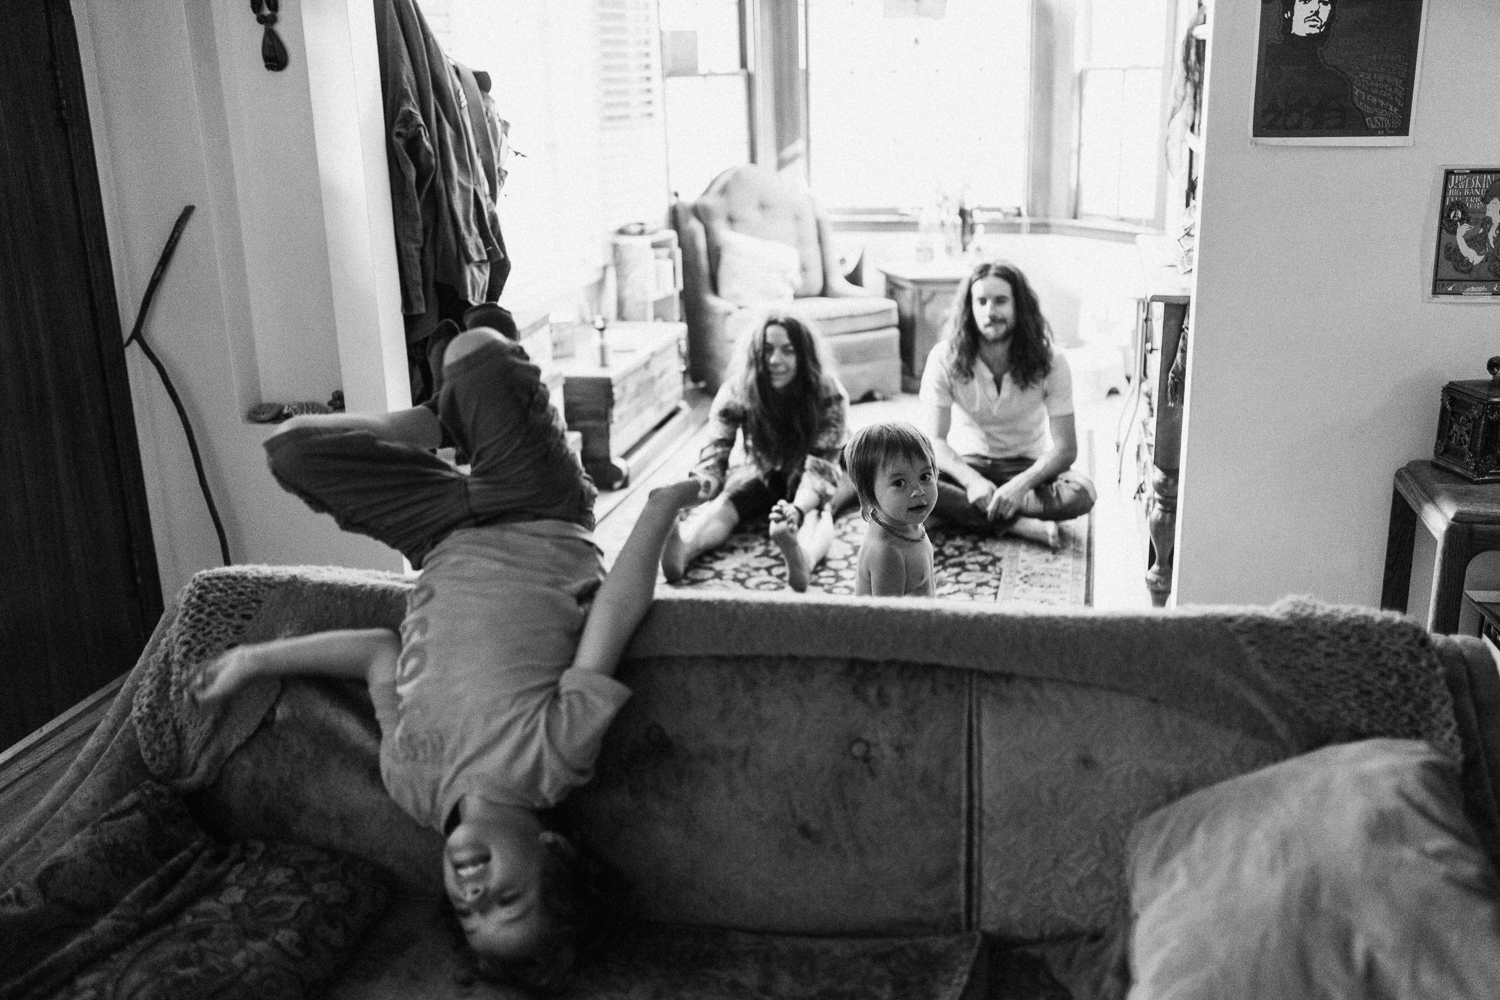 family-goofing-around-in-living-room-during-in-home-family-photo-session-with-jen-fairchild-photography-in-sugarhouse-salt-lake-city-utah